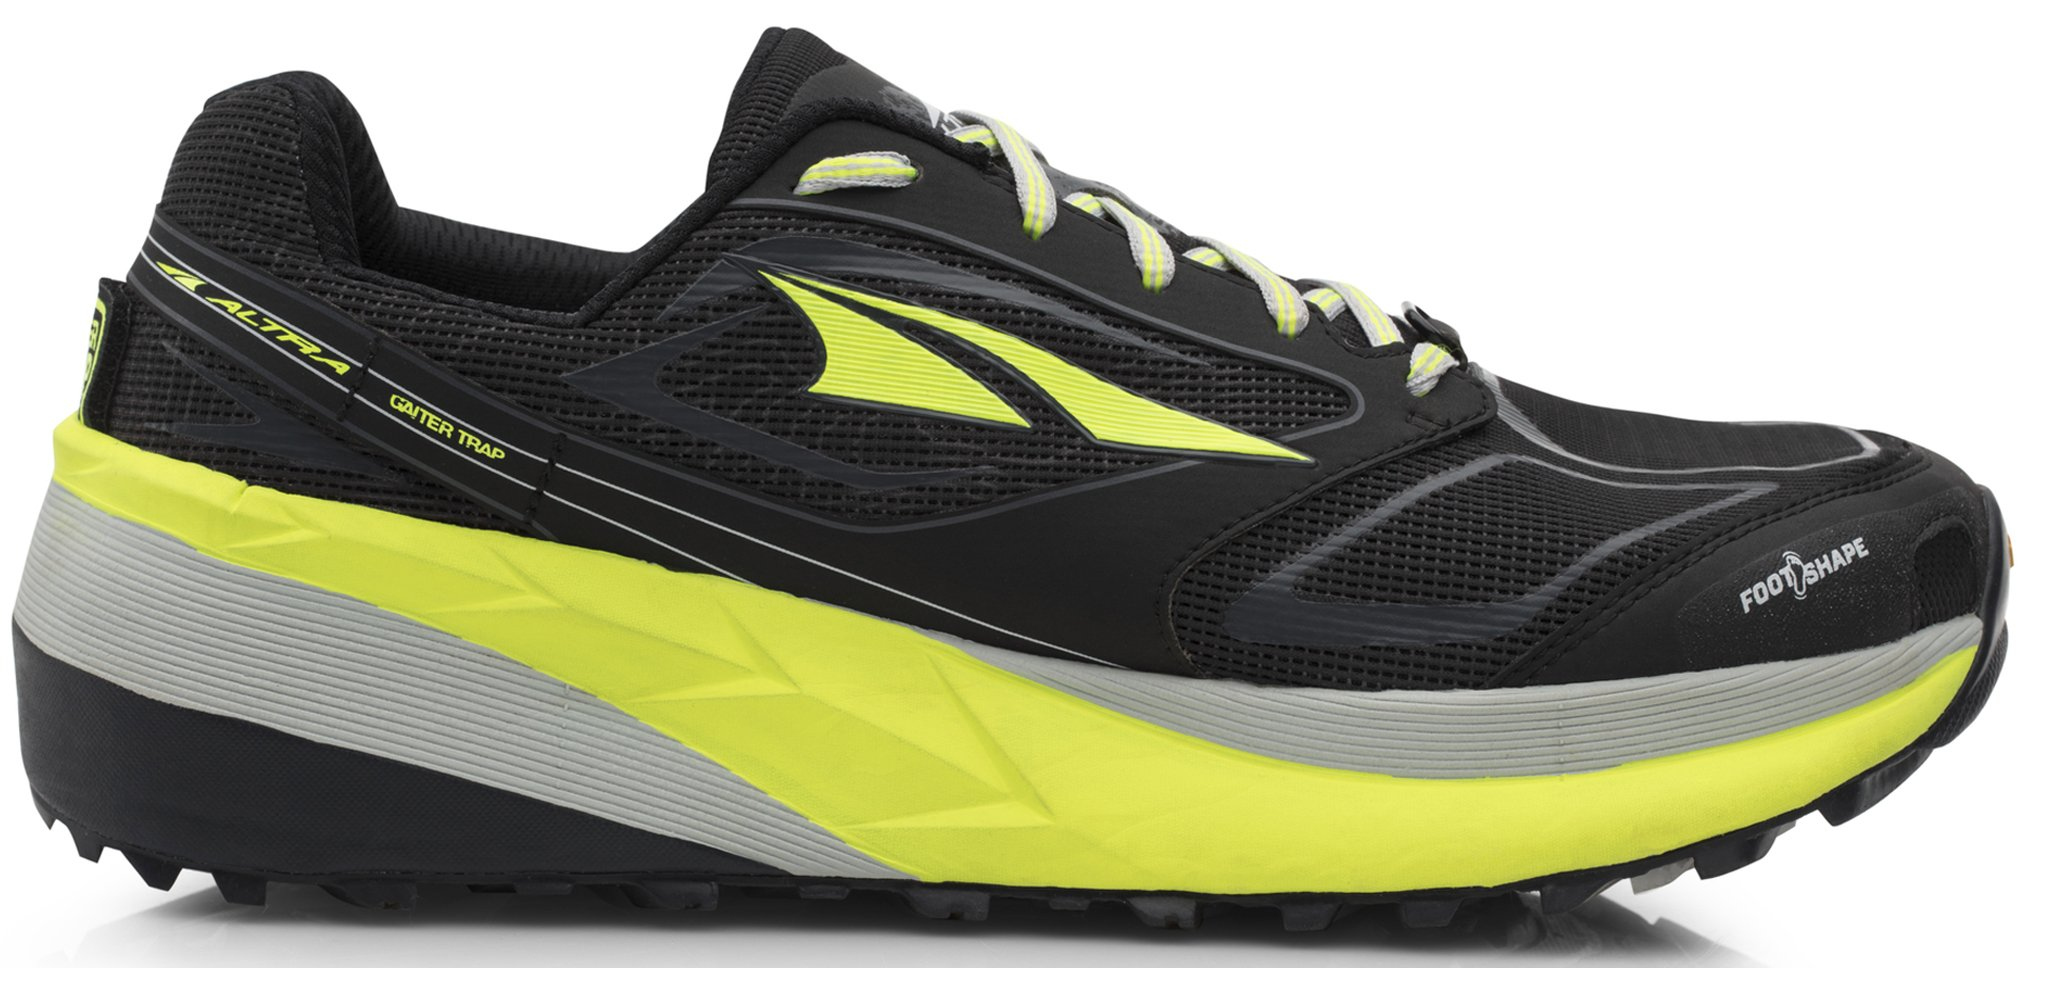 Altra AFM1859F Men's Olympus 3 Running Shoe, Black/Yellow - 10 D(M) US by Altra (Image #1)